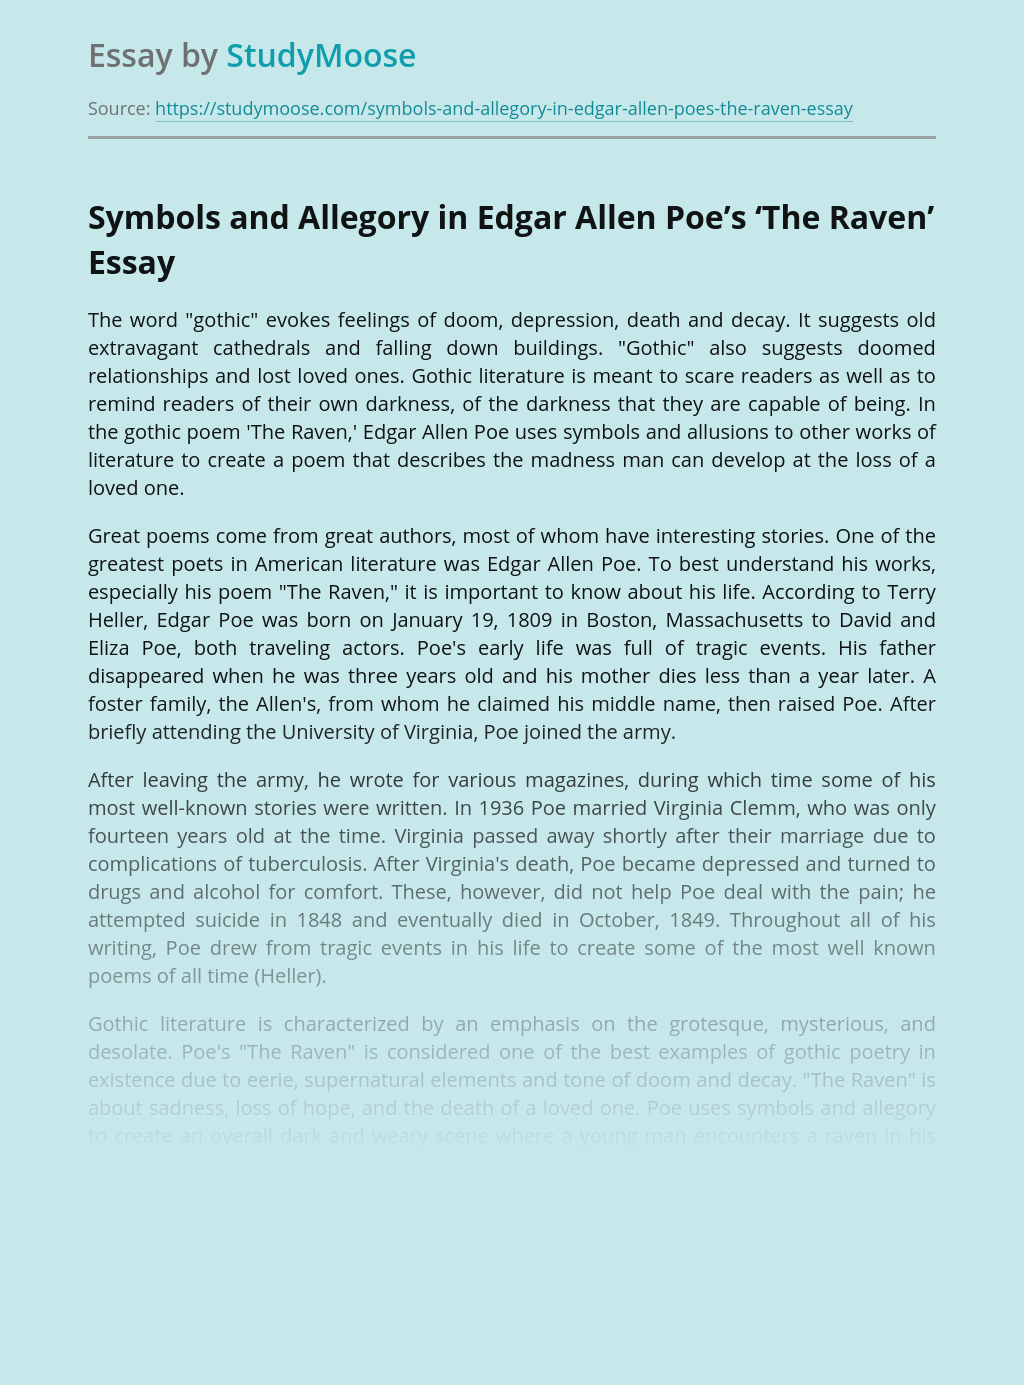 Symbols and Allegory in Edgar Allen Poe's 'The Raven'